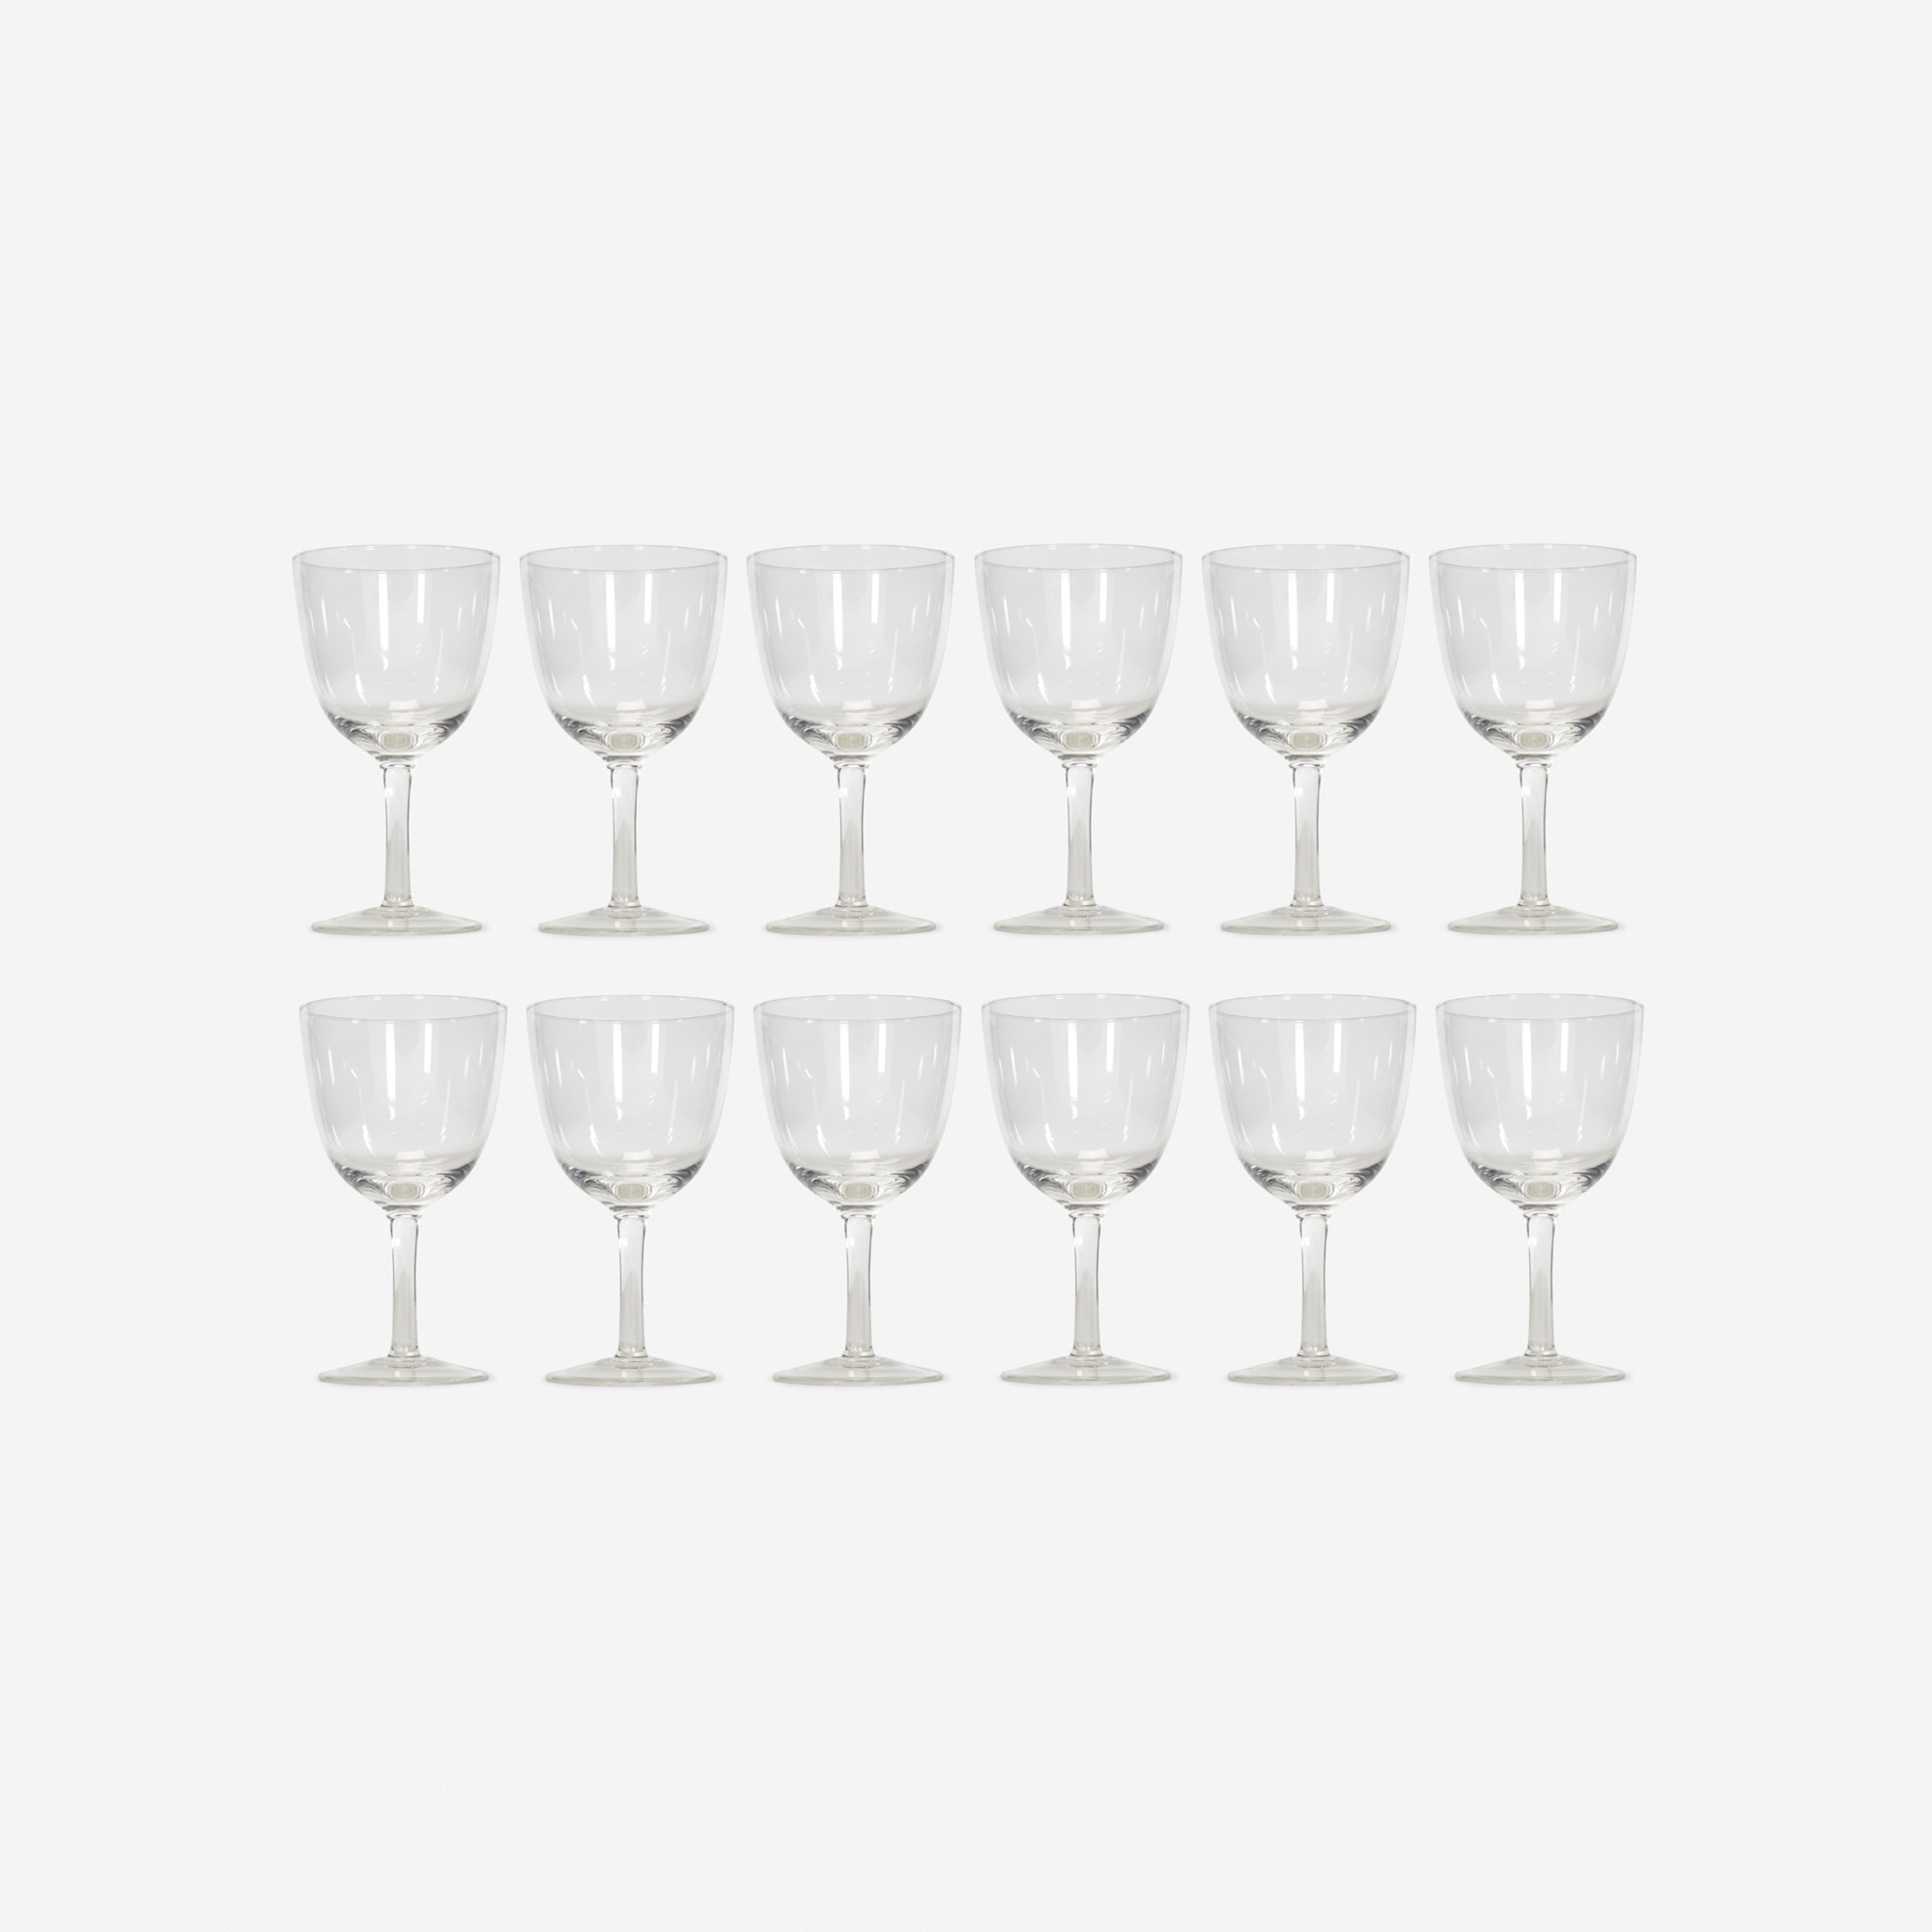 318: Garth and Ada Louise Huxtable / Water glasses from The Four Seasons, set of twelve (1 of 1)